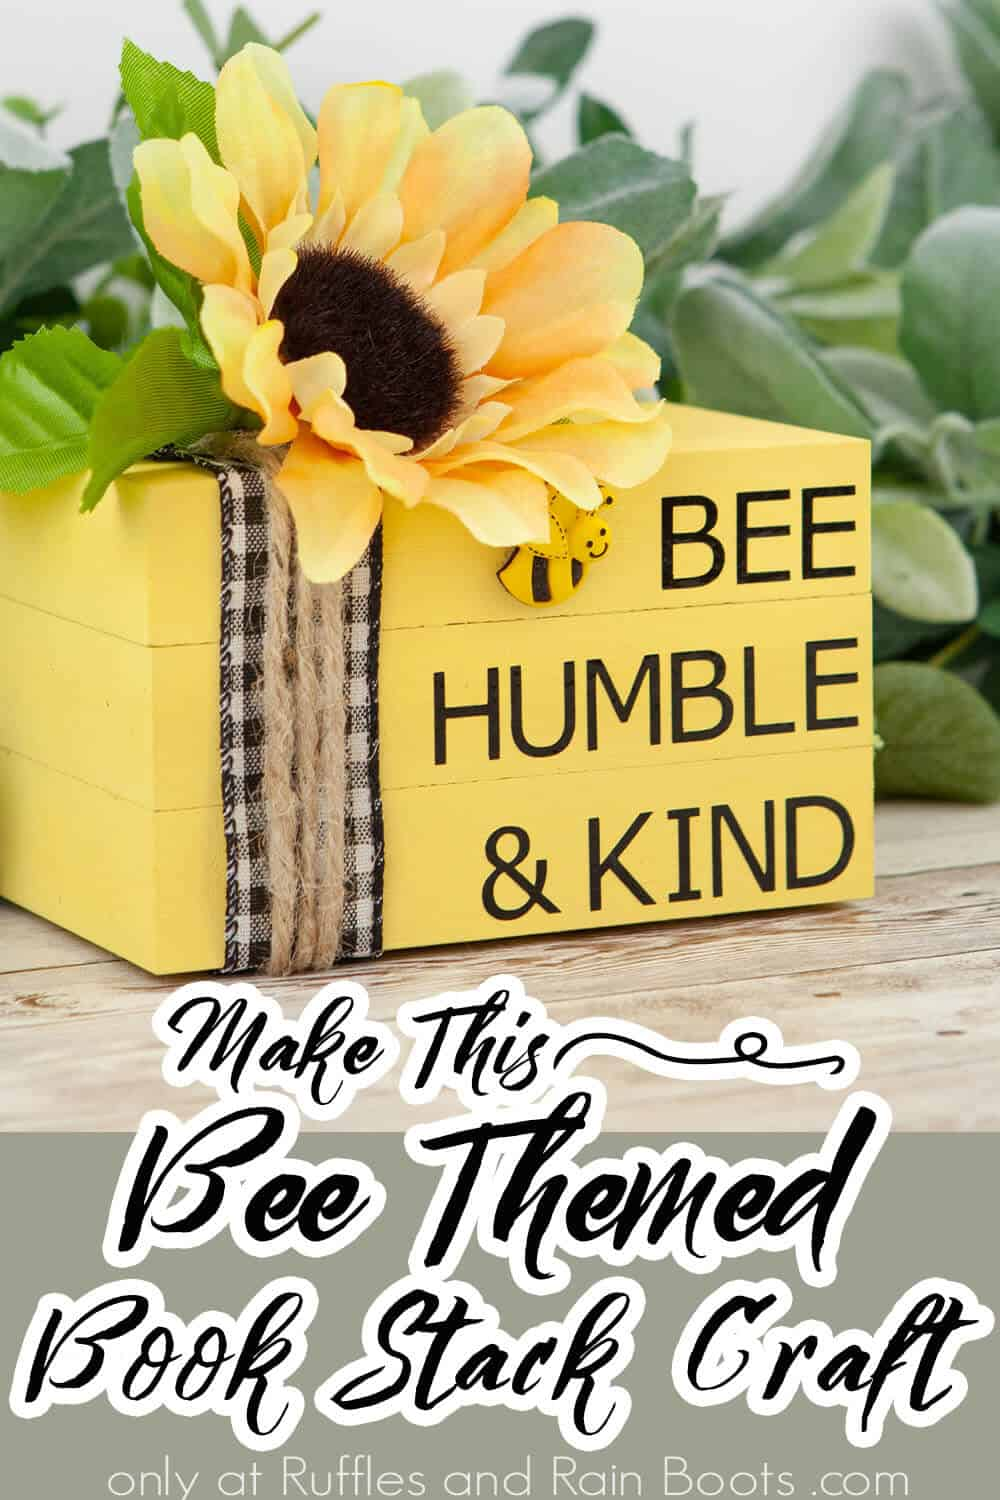 bee book stack craft for cricut with text which reads make this bee themed book stack craft